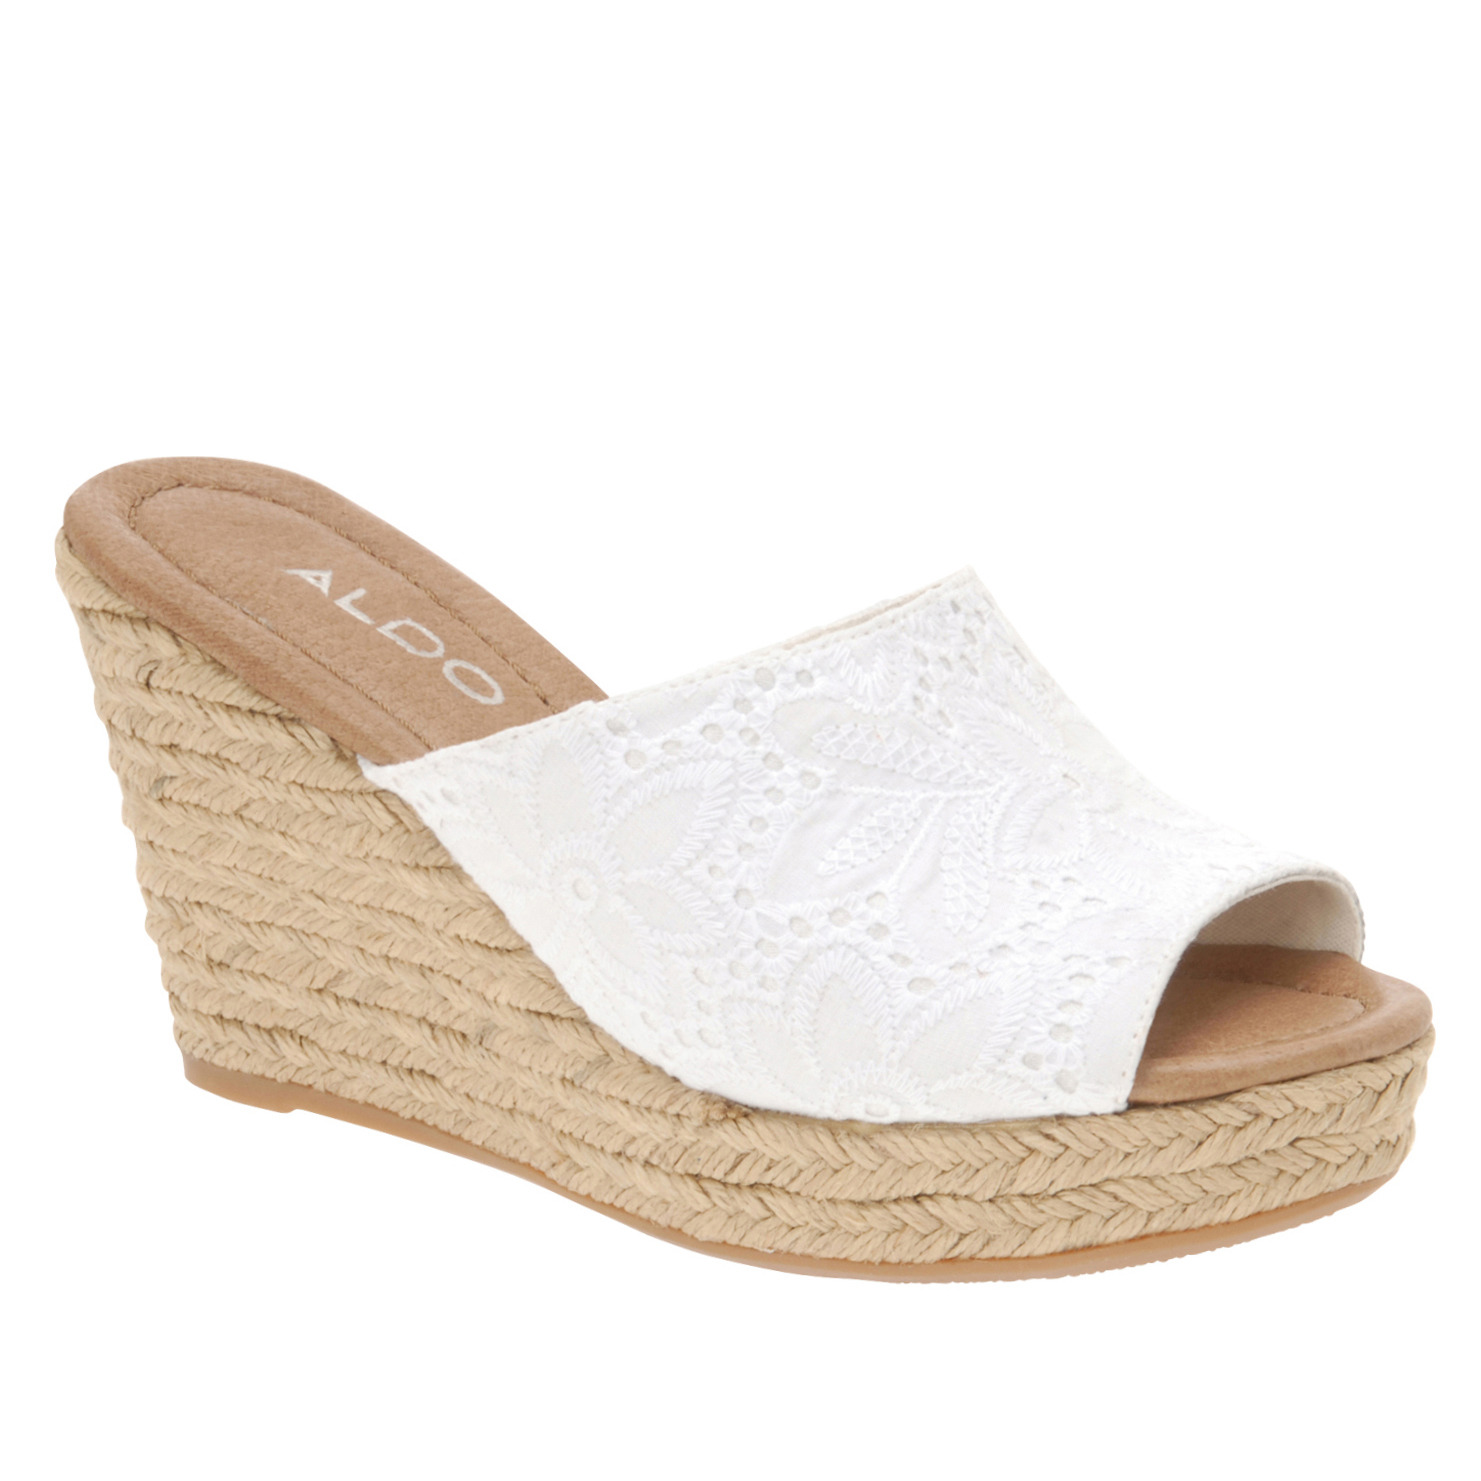 Lyst - ALDO Wedge Sandals in White